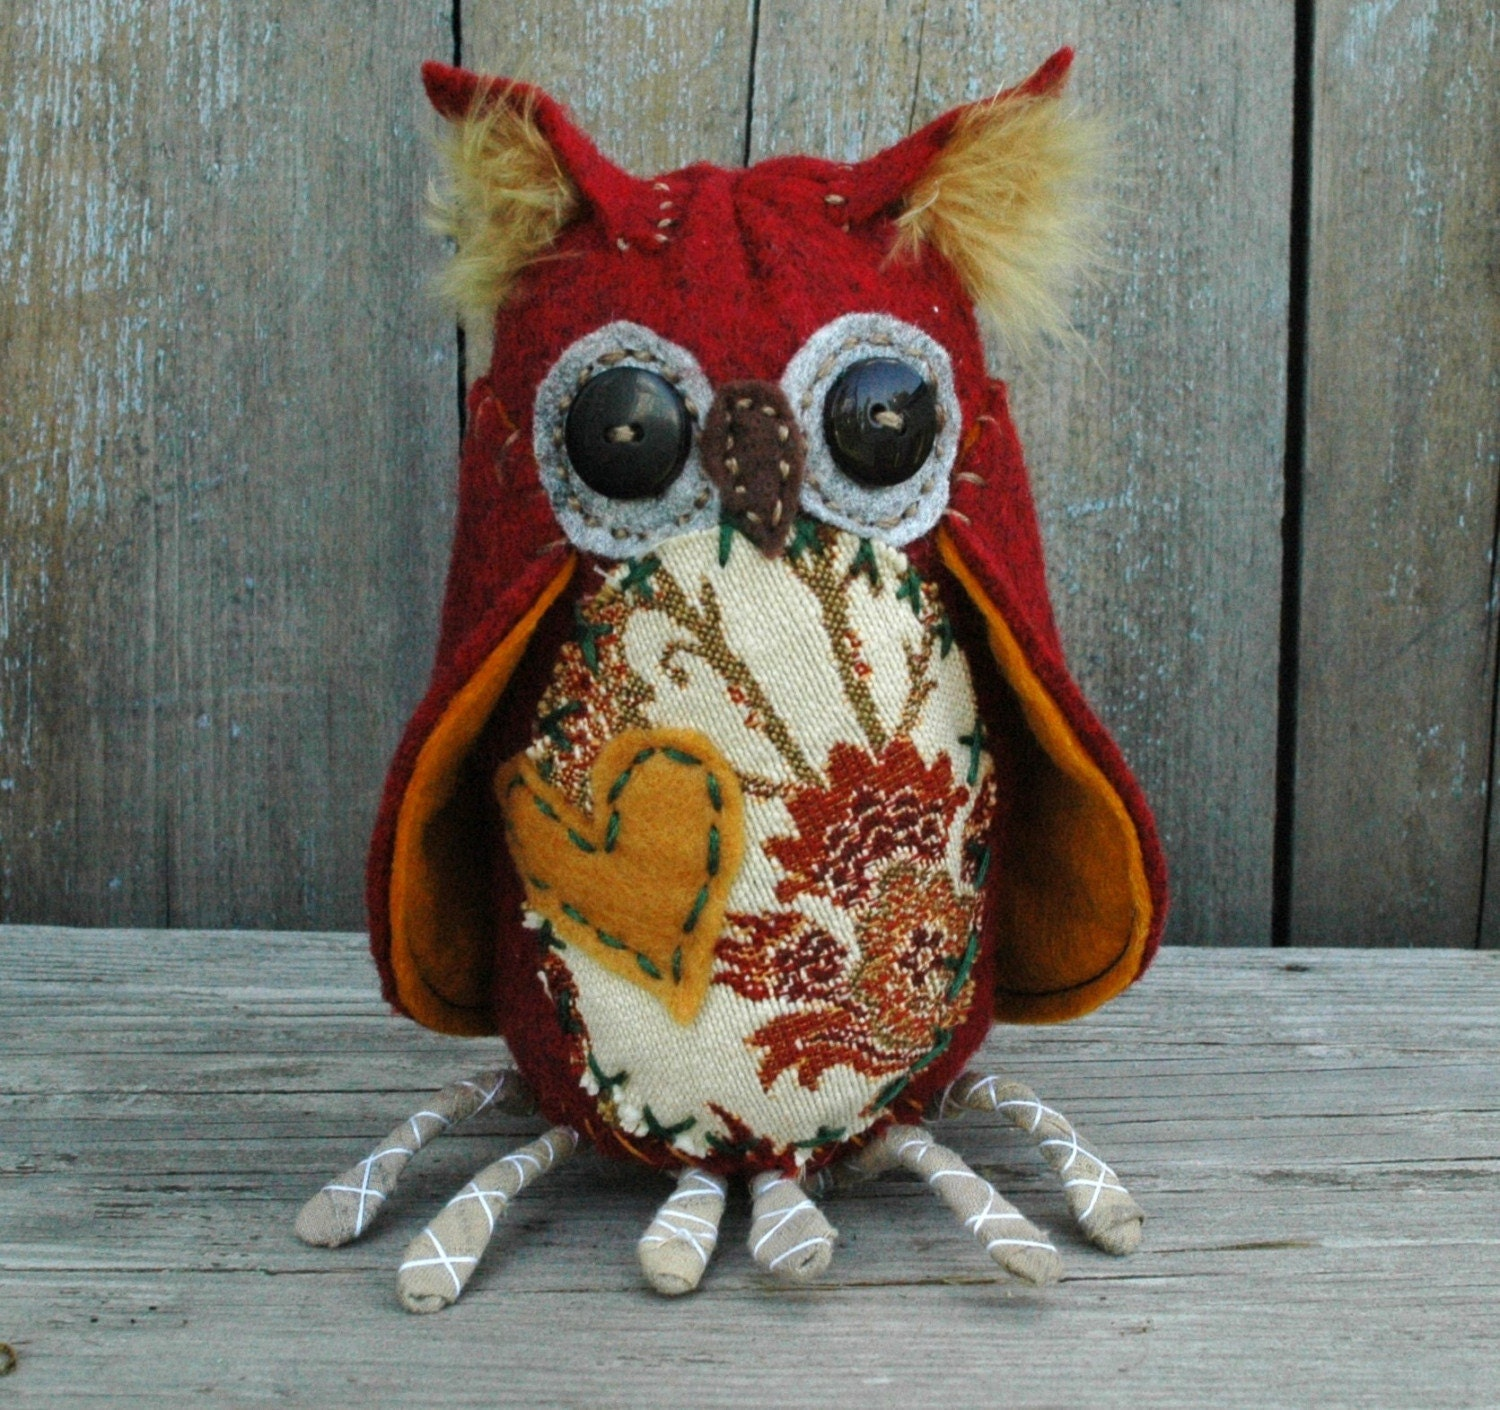 Art the Red Owl